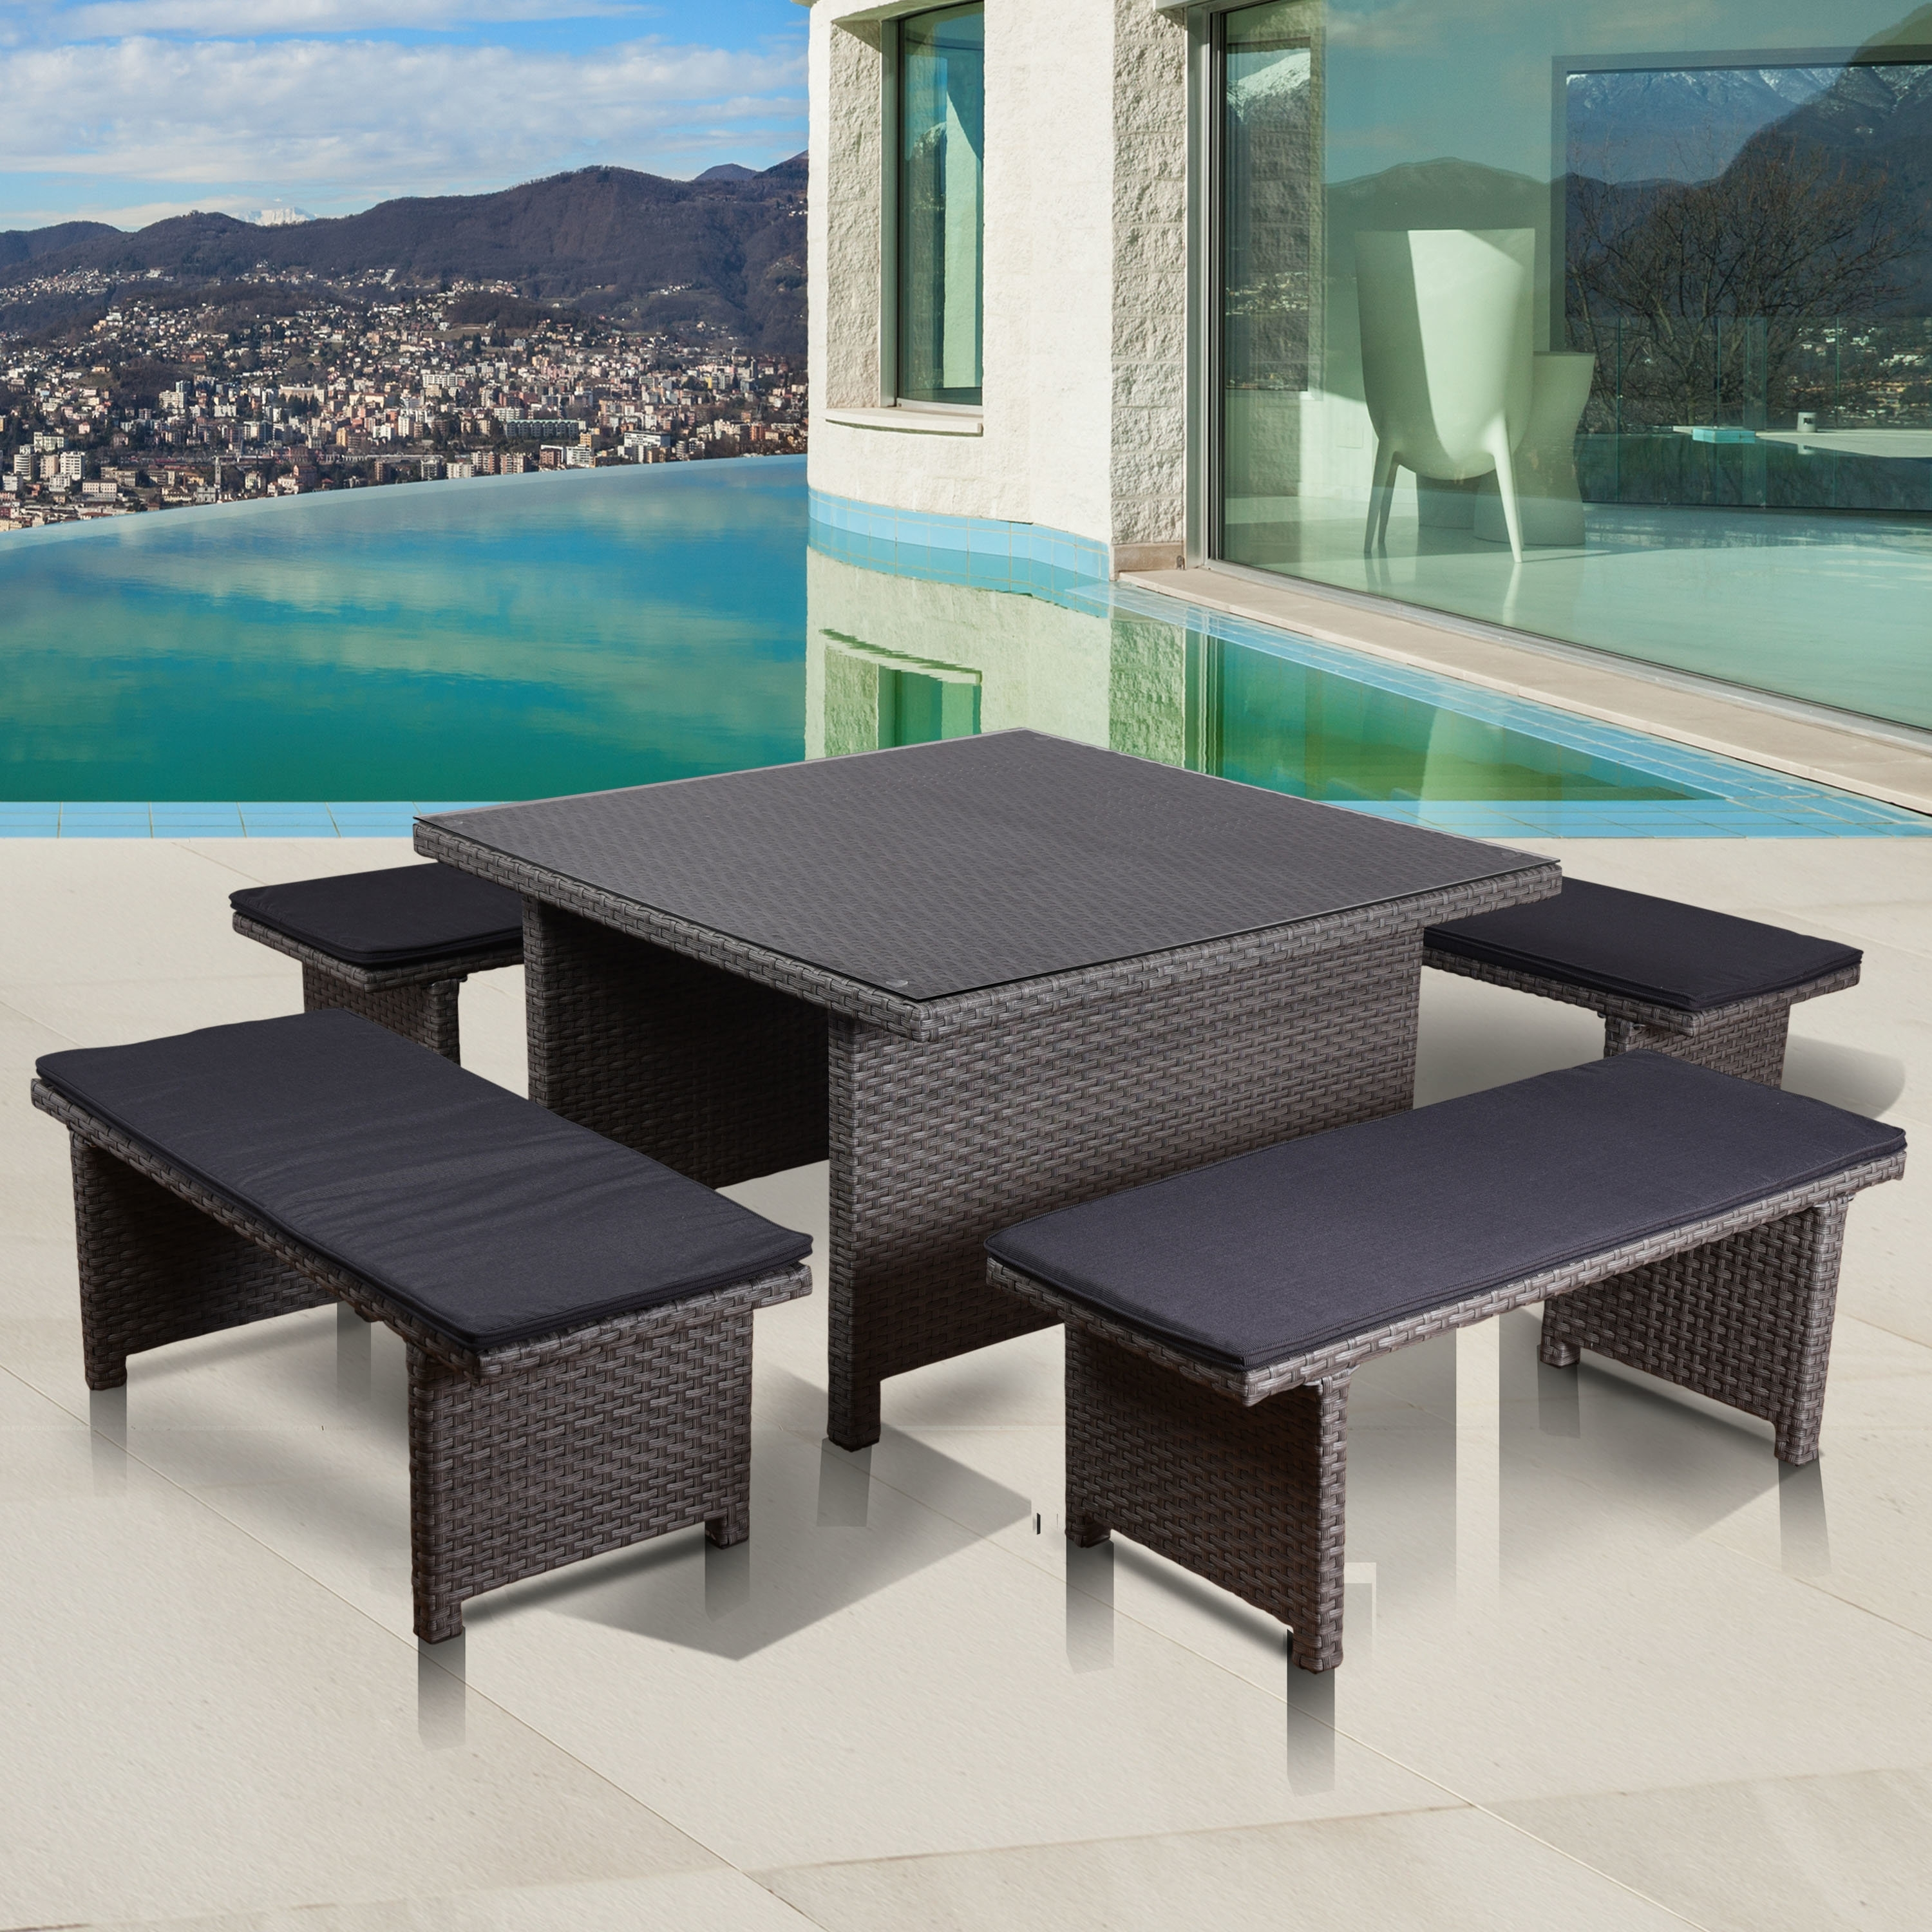 Candice Ii 5 Piece Round Dining Sets With Slat Back Side Chairs Inside Newest Beachcrest Home Neo Low Patio 5 Piece Dining Set With Cushions (Gallery 23 of 25)